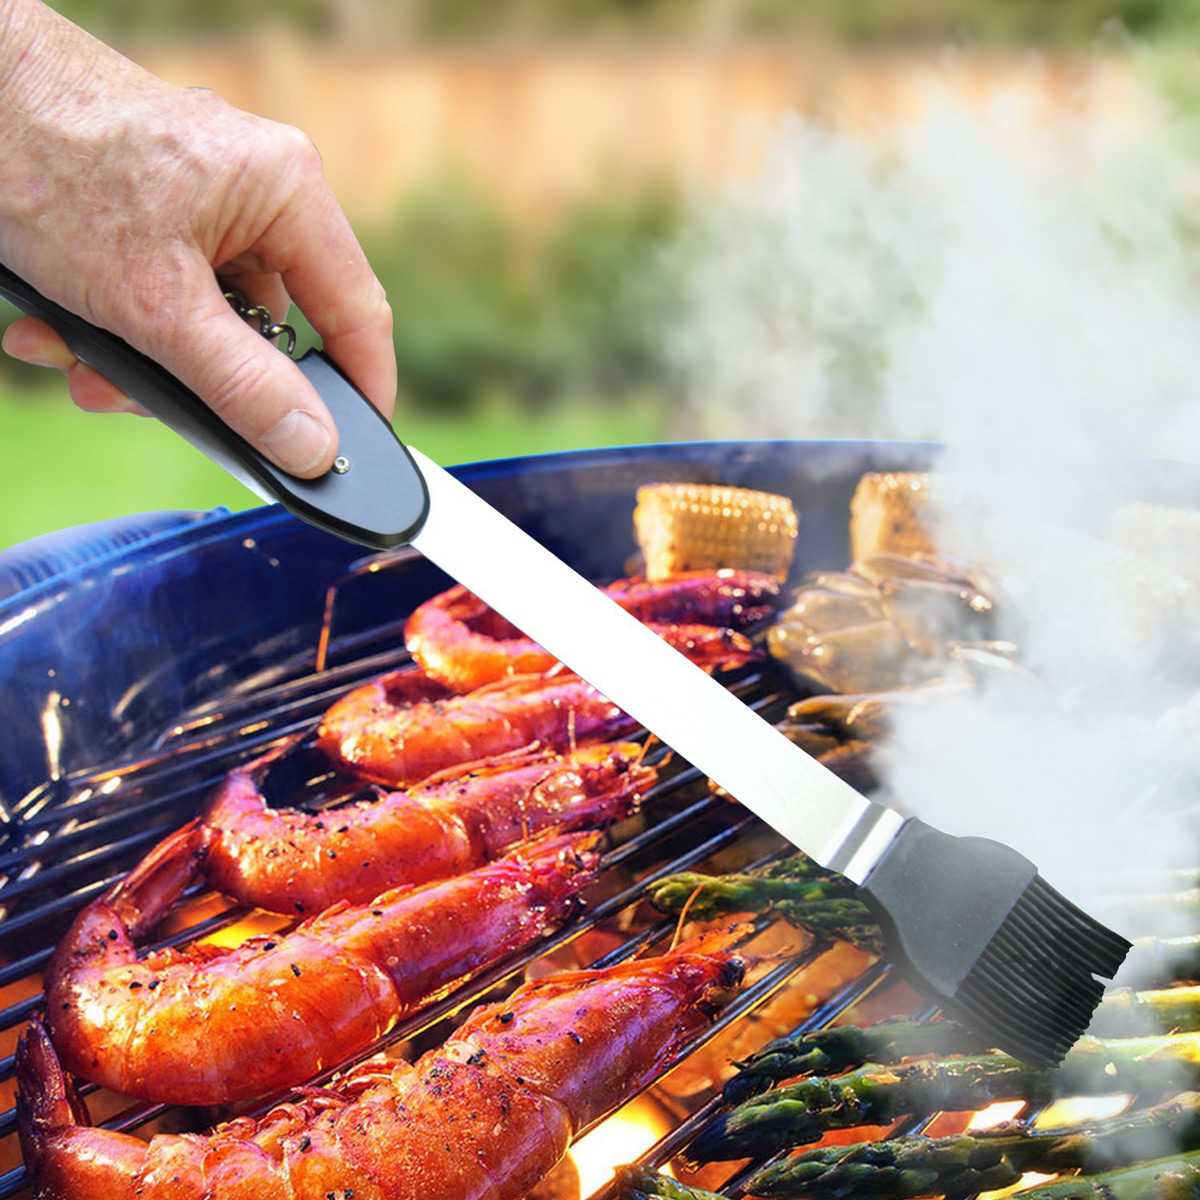 5 In 1 Bbq Grill Multi Tool The Green Head